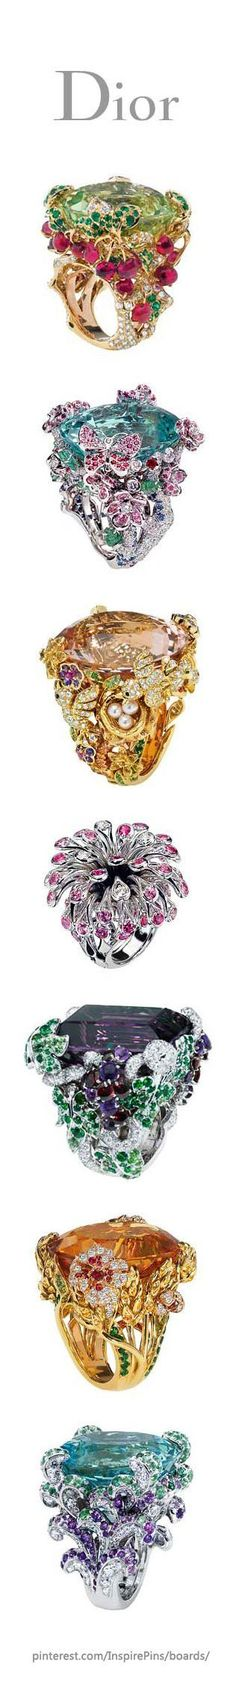 #Dior Joaillerie Rings